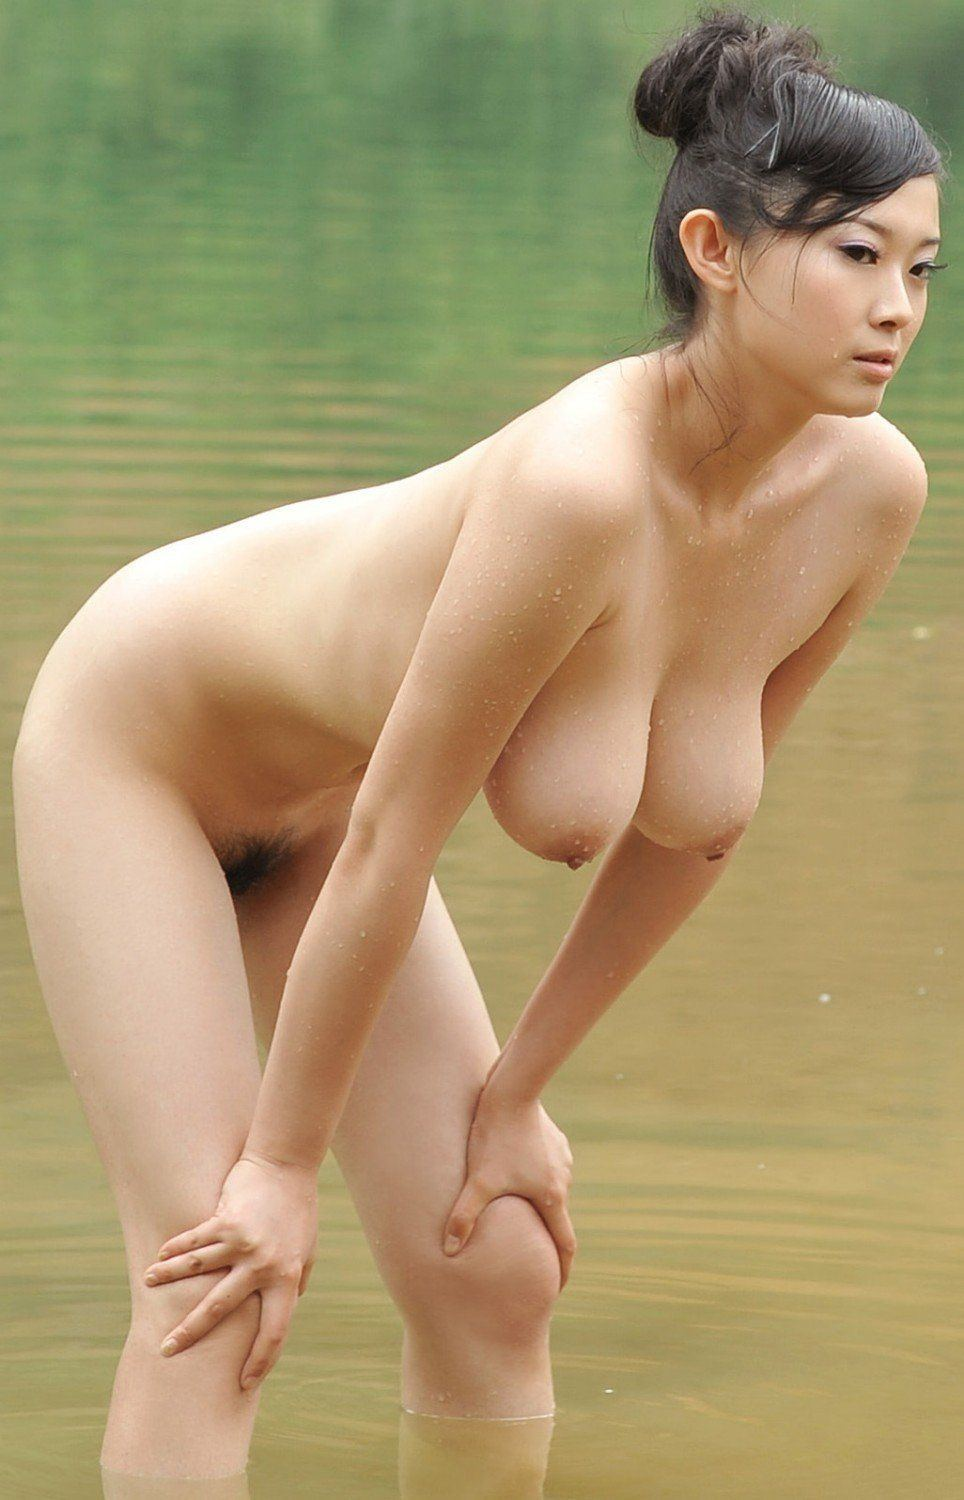 Chubby naked swimming girls regret, that